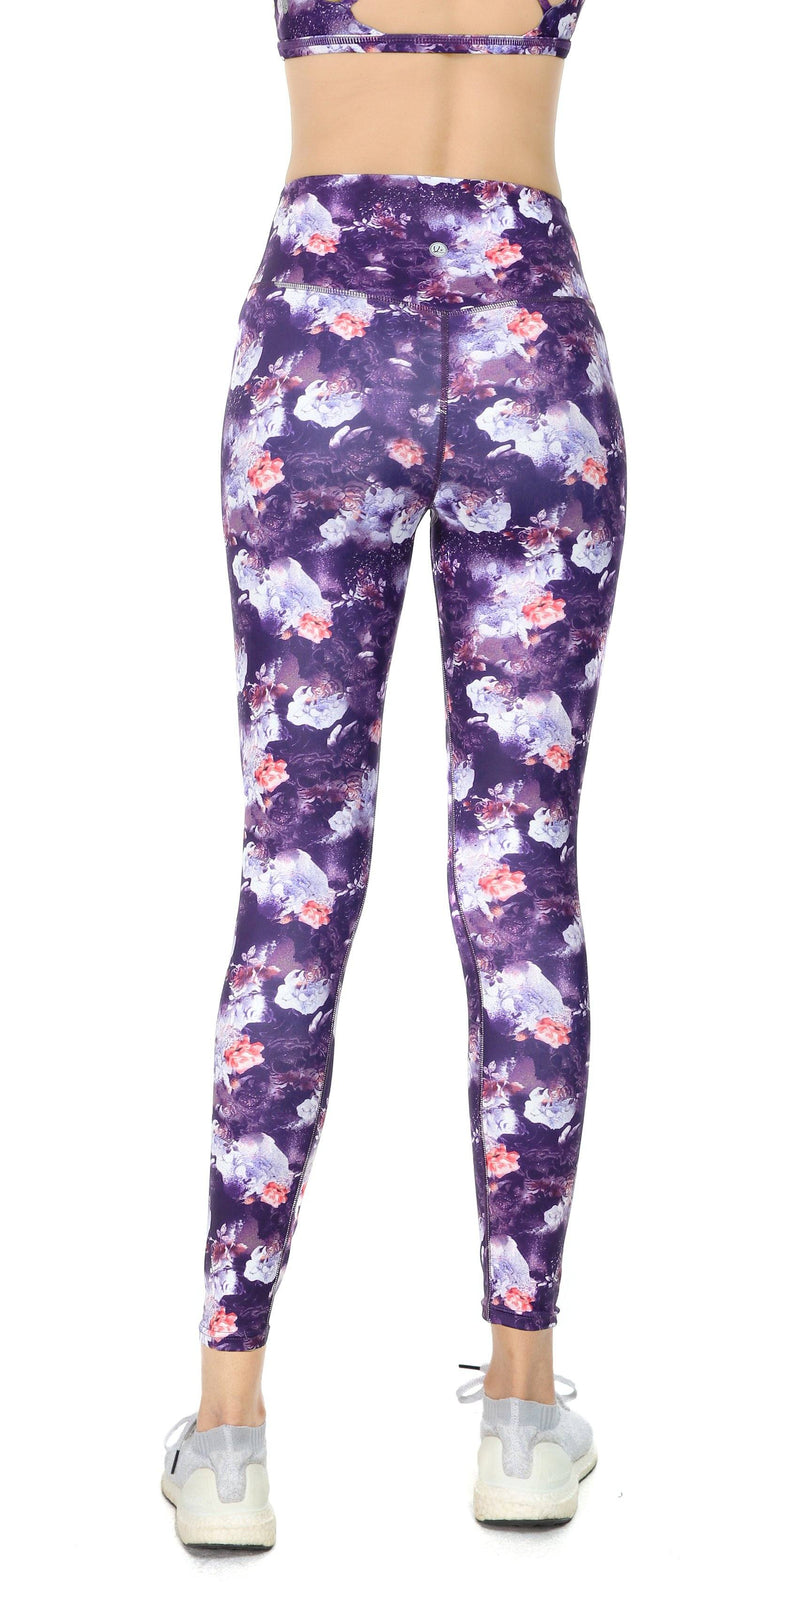 Women Yoga Leggings Tummy Control Workout Pants Running Peach Hip 8207-NEW RELEASE